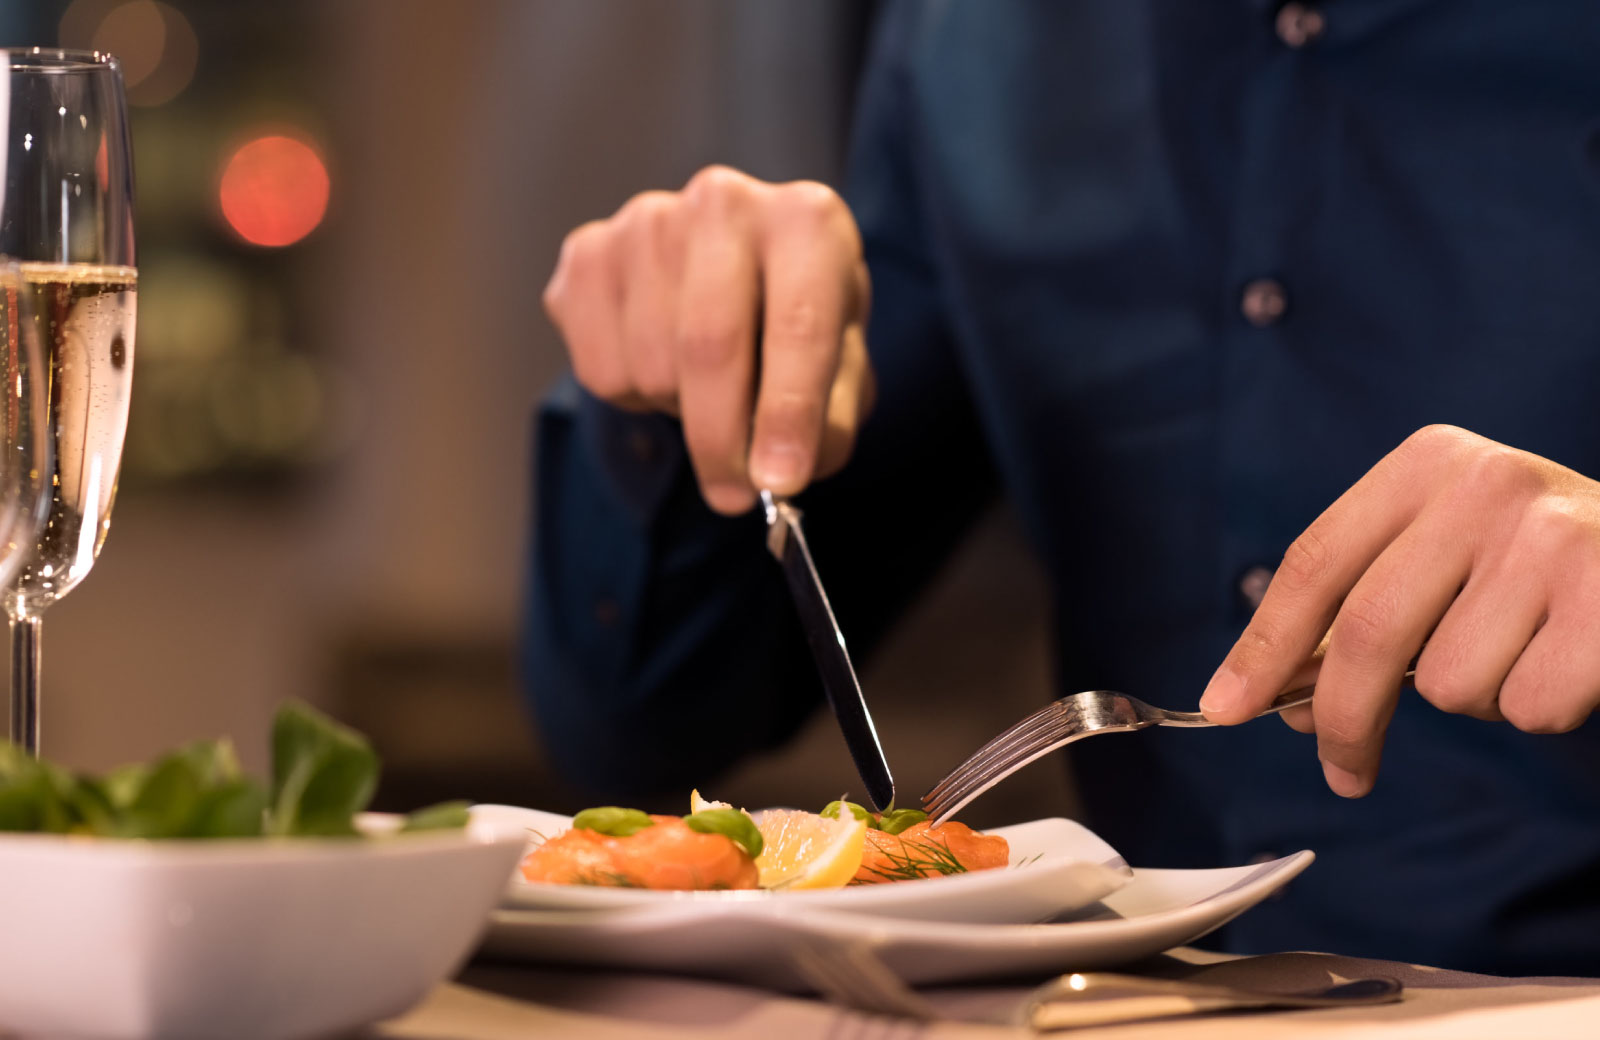 person eating with knife and fork